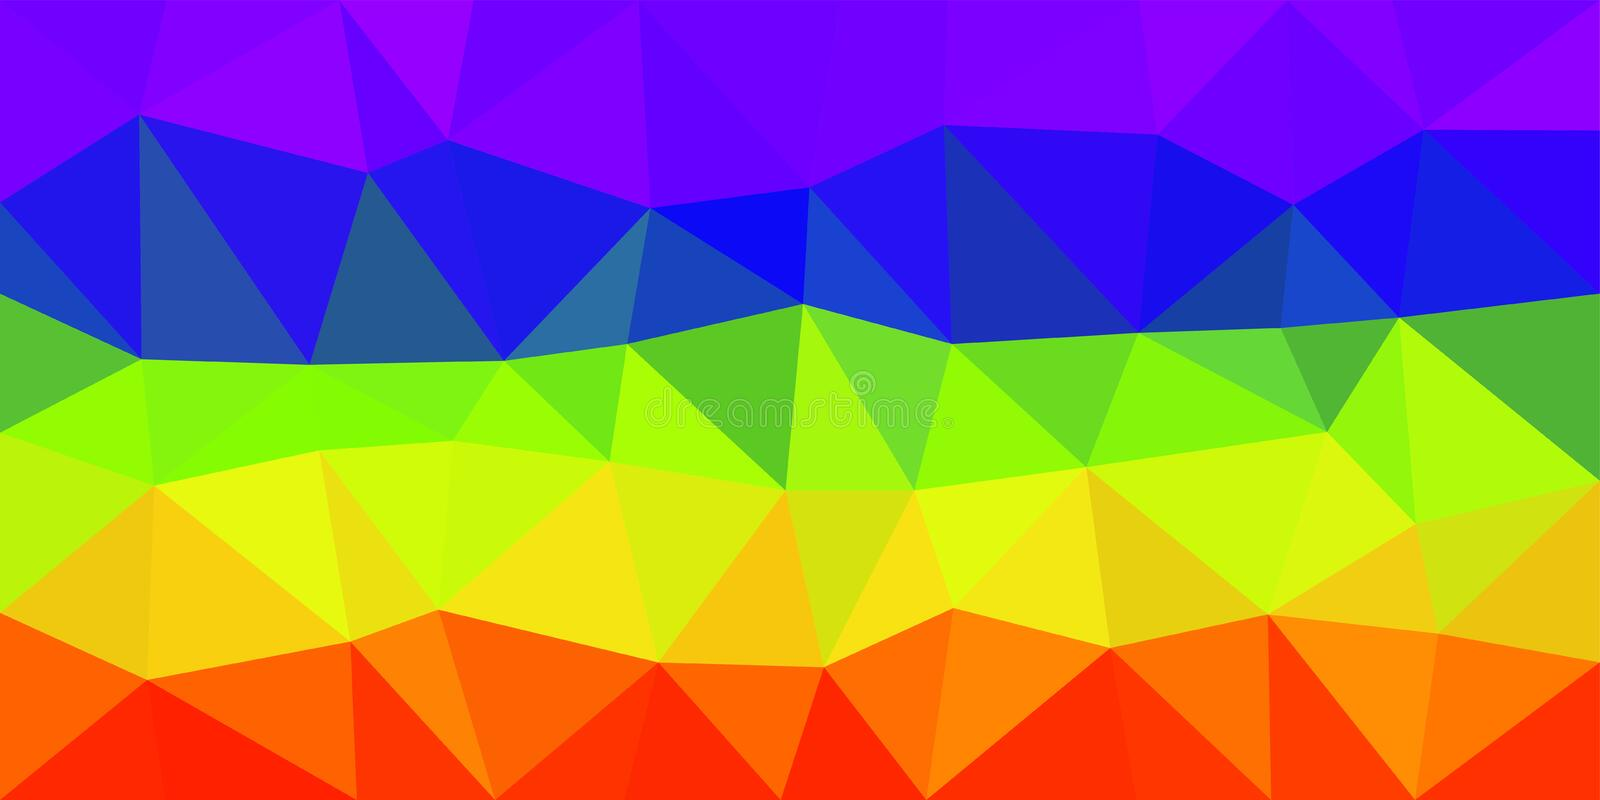 Rainbow Flag Low Poly Vector Background stock illustration